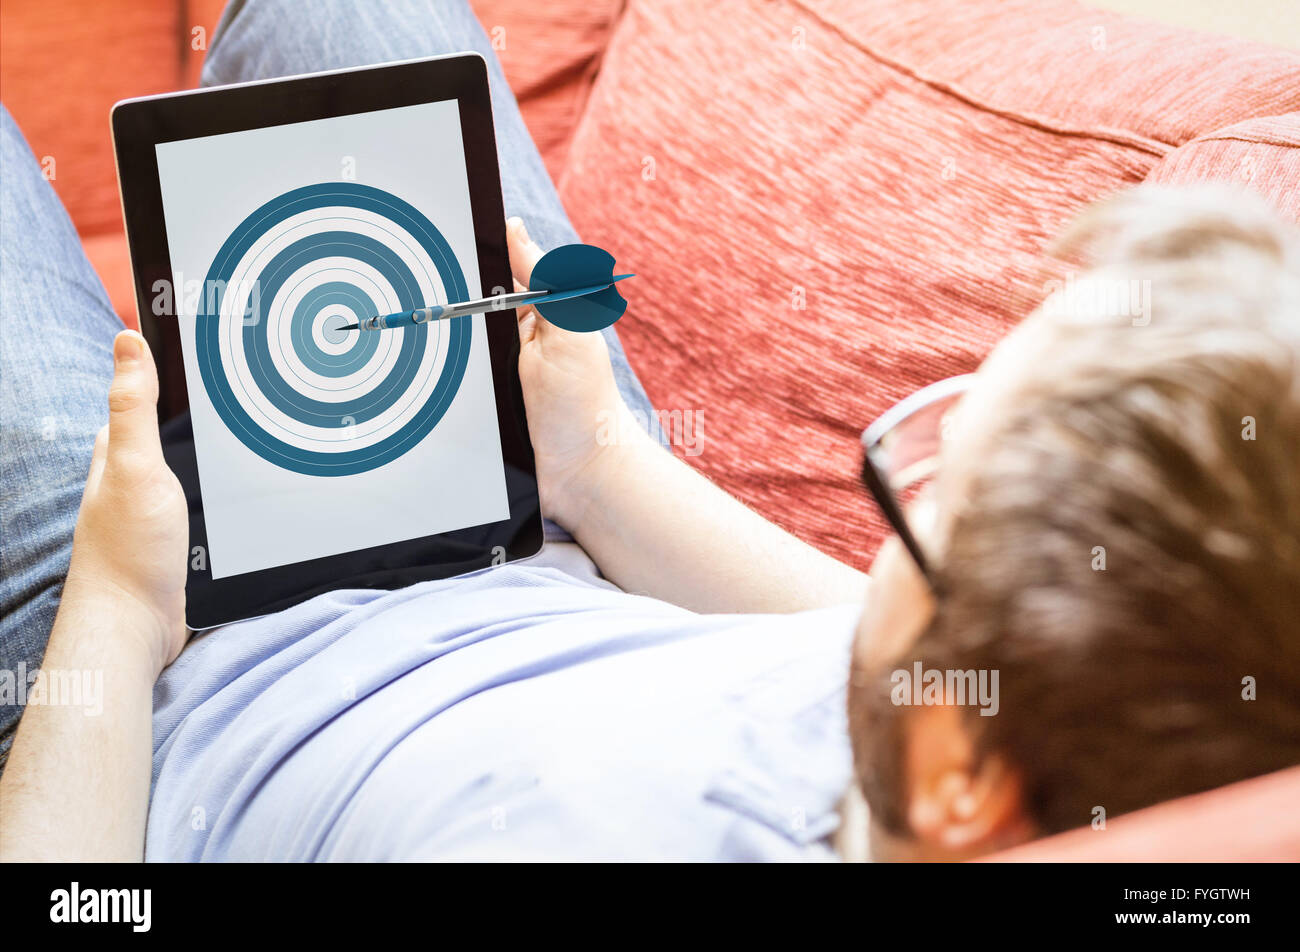 accuracy, business or mobile marketing concept: hipster on the sofa with dartboard tablet. Screen graphics are made - Stock Image